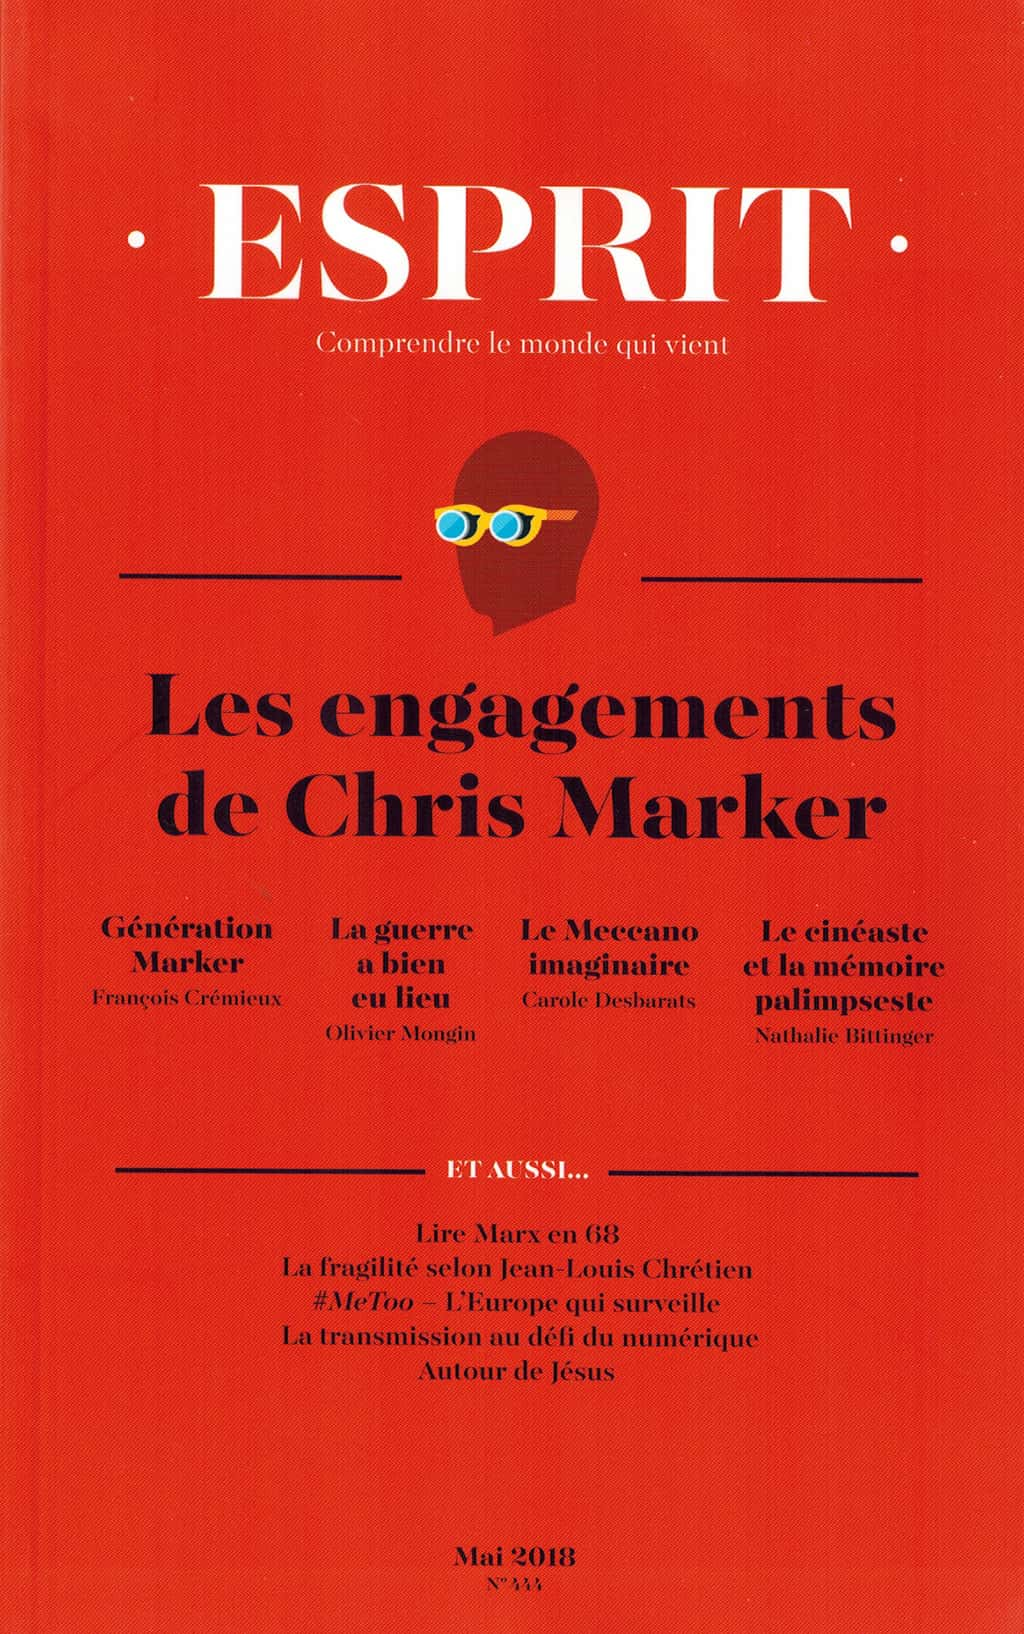 Esprit 2018 Les Engagements de Chris Marker